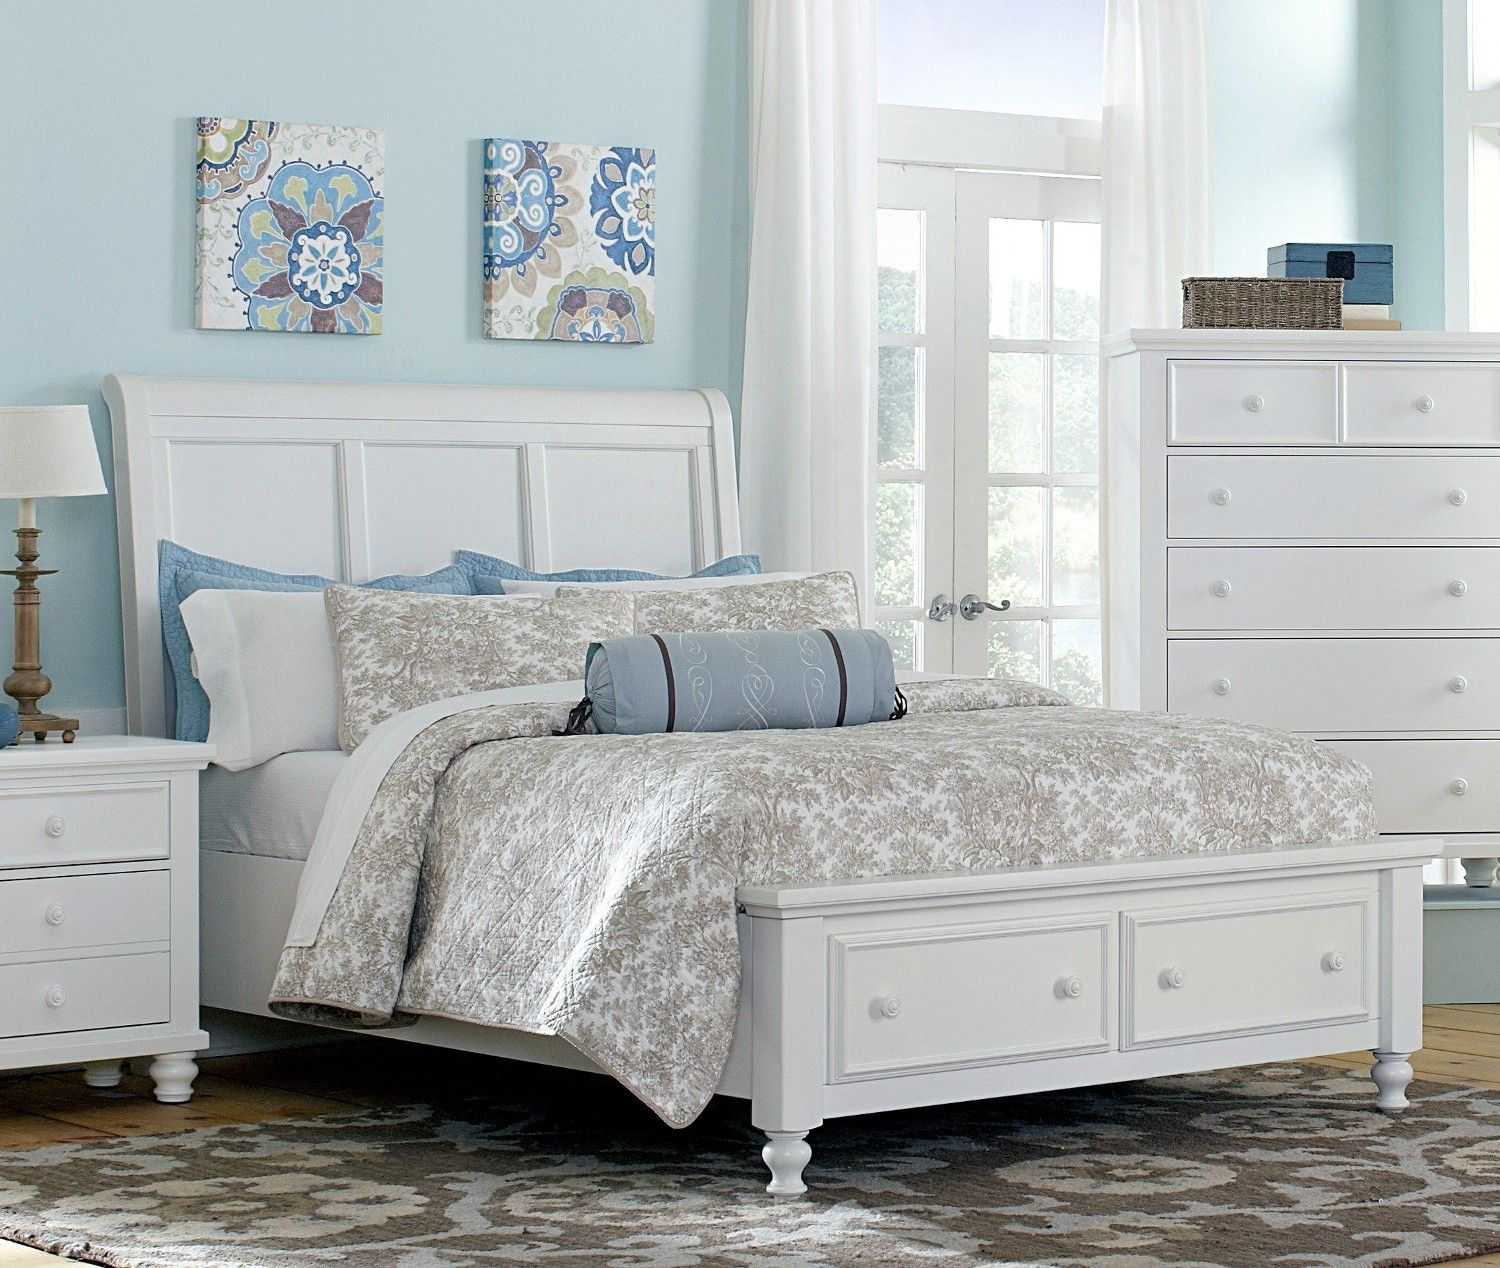 white wood sleigh beds   Furniture Bedroom Furniture Sleigh Bed White Queen  Sleigh Bed. white wood sleigh beds   Furniture Bedroom Furniture Sleigh Bed